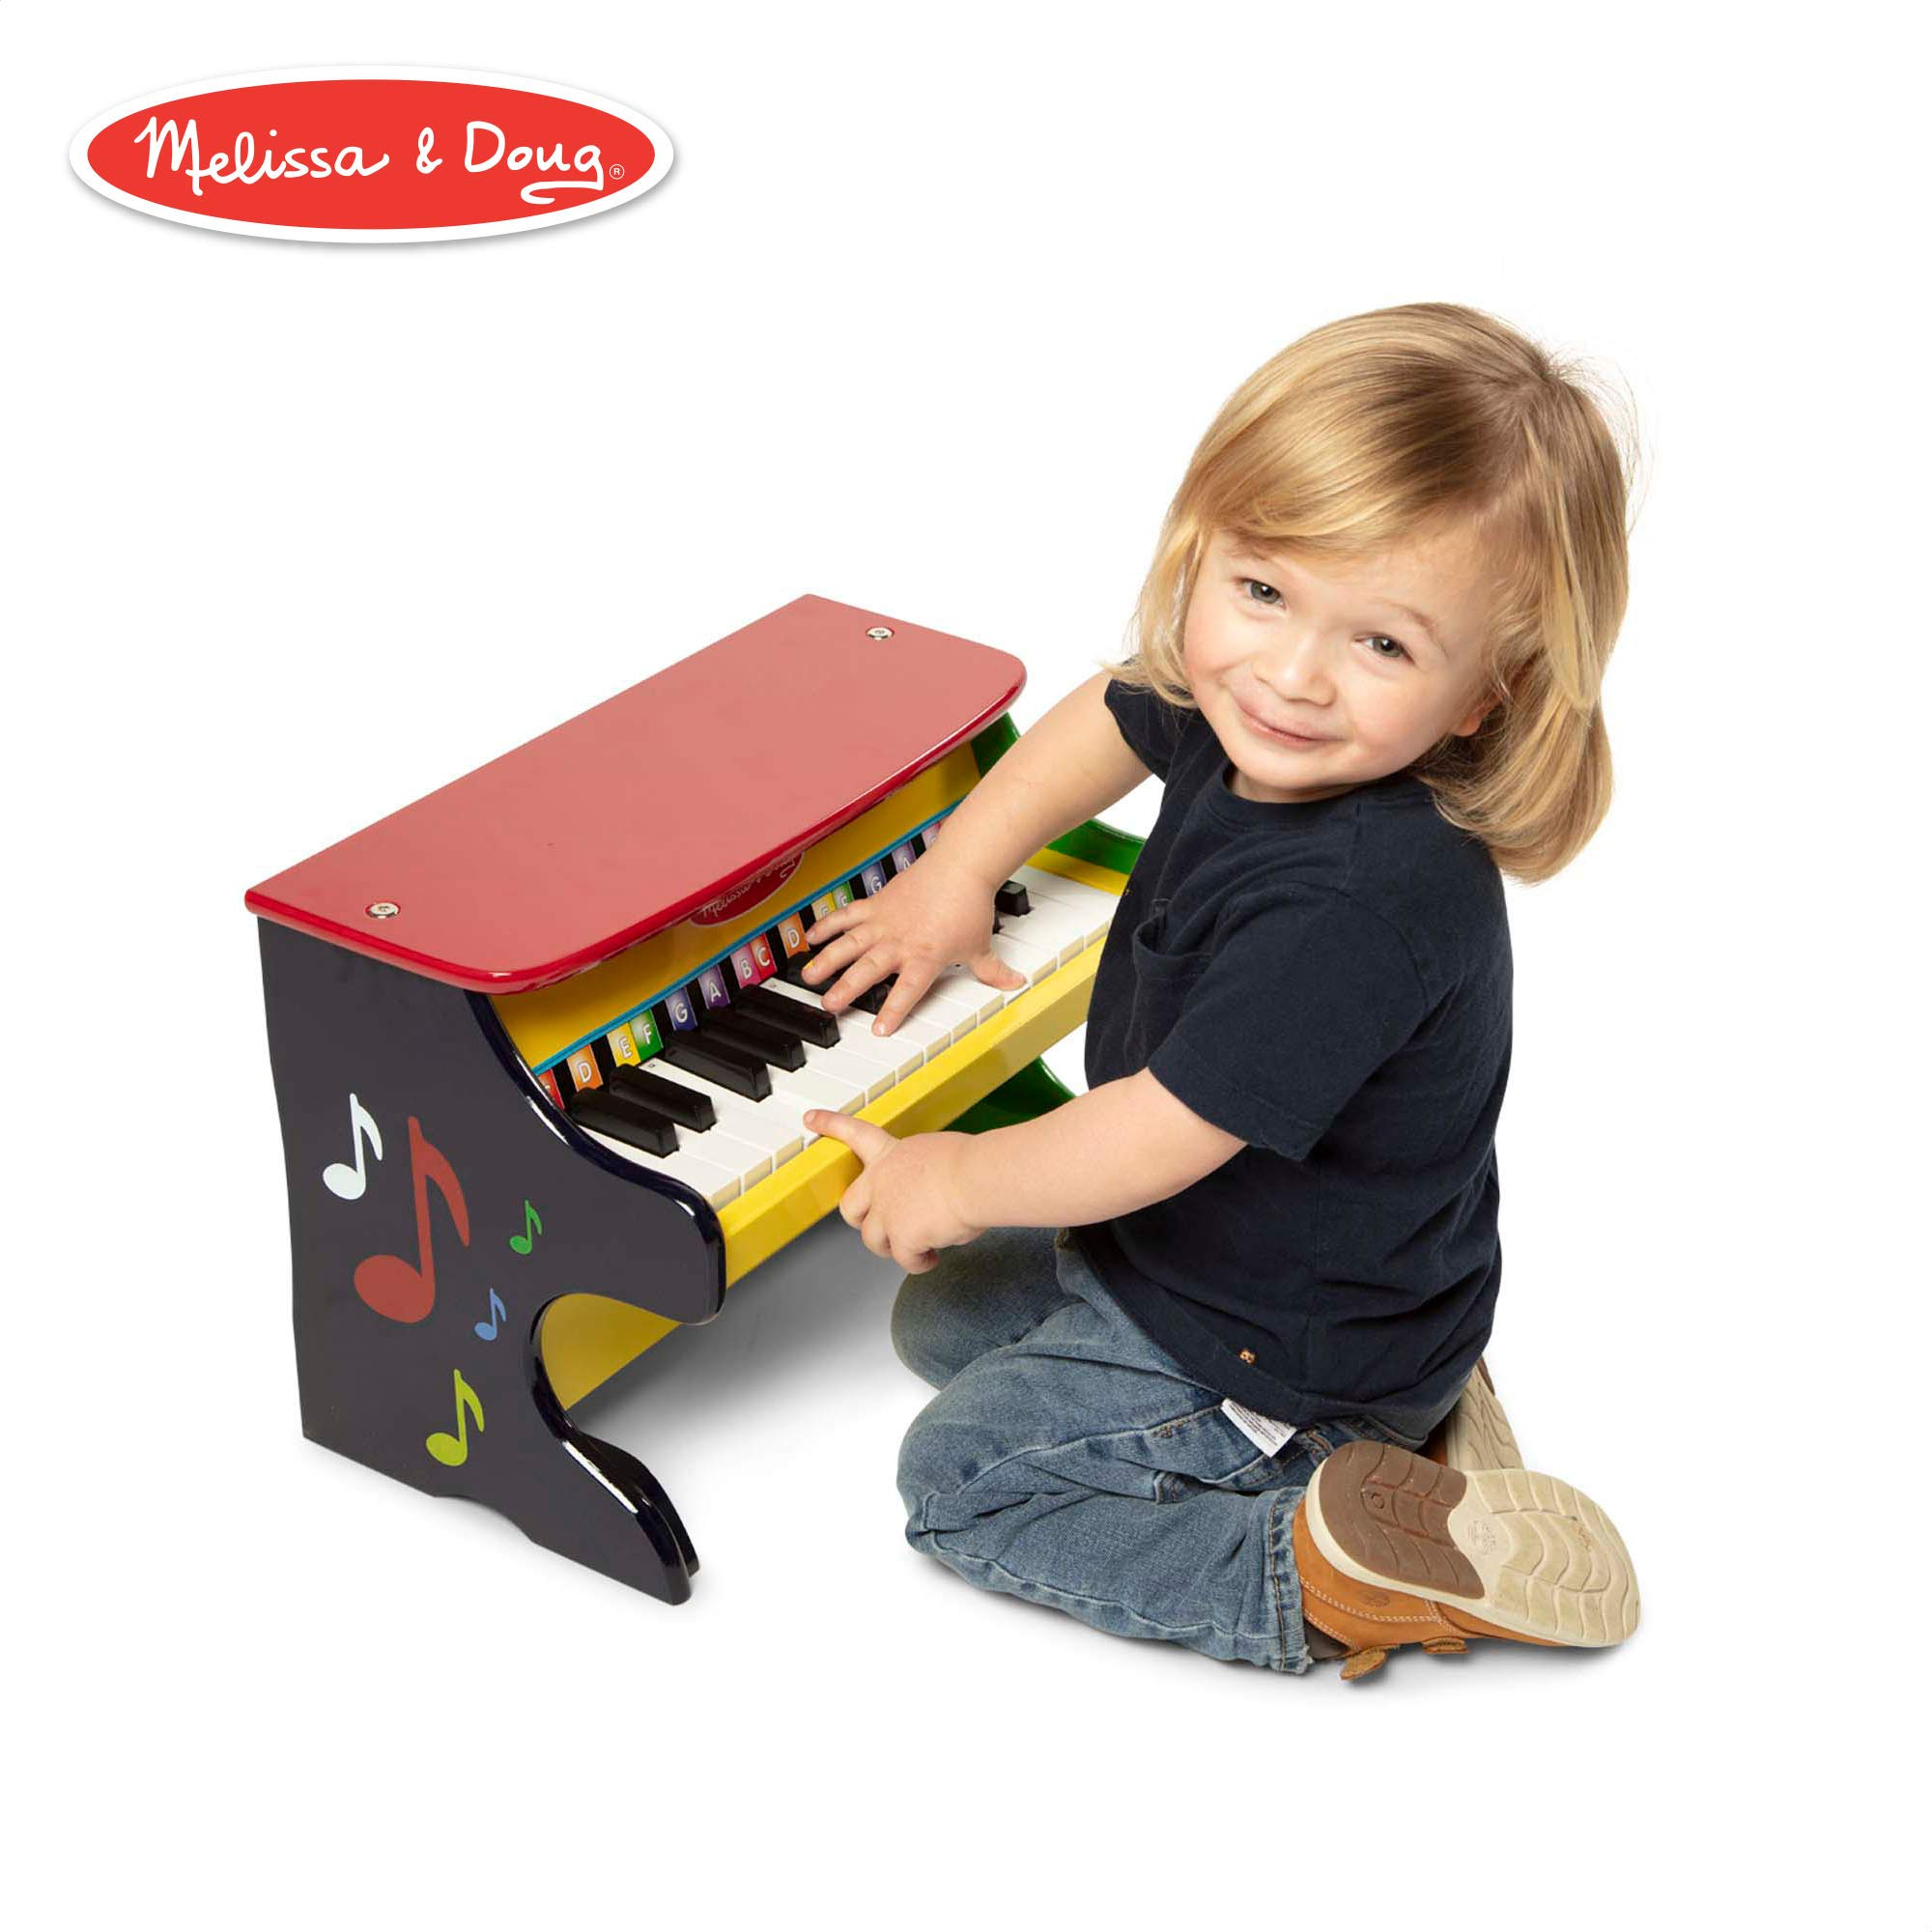 Melissa & Doug Learn-to-Play Piano, Musical Instruments, Solid Wood Construction, 25 Keys and 2 Full Octaves, 11.5'' H x 9.5'' W x 16'' L